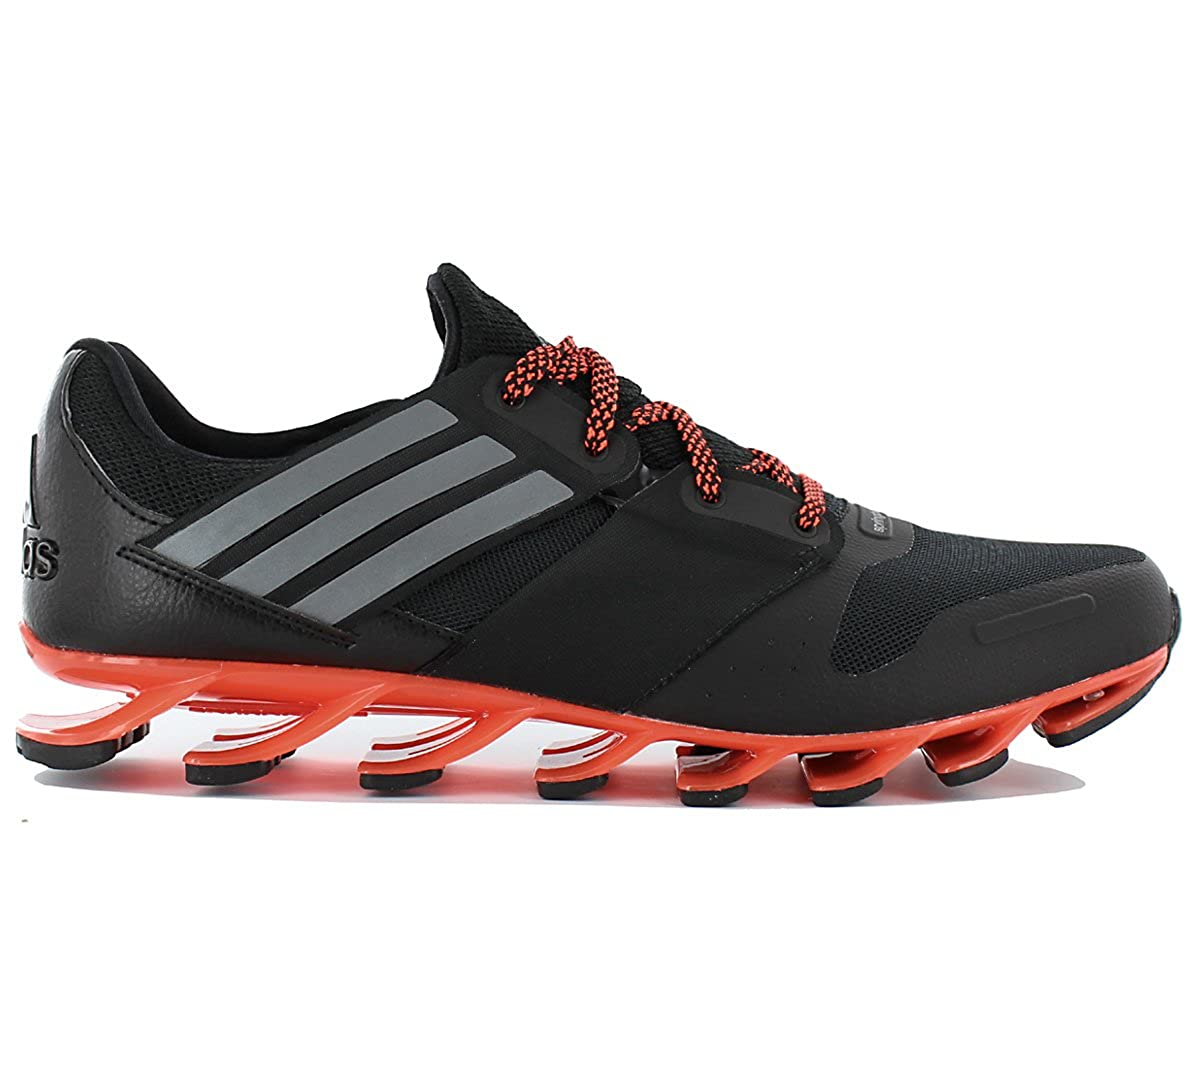 cheap for discount a72fa edac4 adidas Performance Mens Springblade Solyce Running Shoes rrp£130   Amazon.co.uk  Shoes   Bags